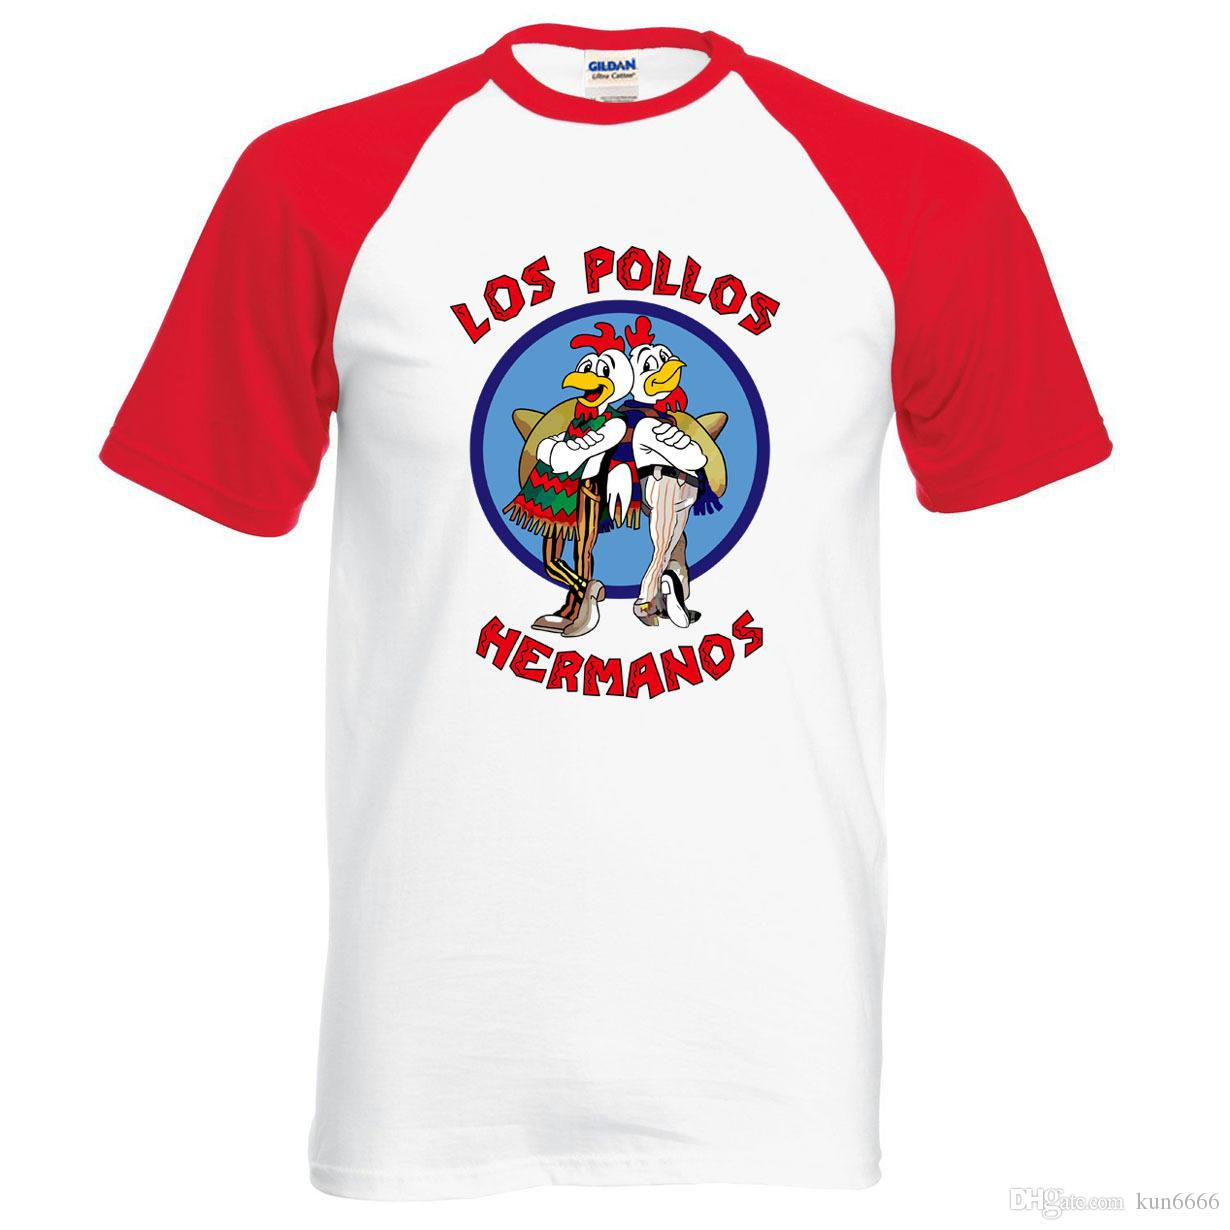 9cc2ecb08 2019 Wholesale Breaking Bad Tees LOS POLLOS Hermanos T Shirt Chicken  Brothers 2018 Hot Sale Summer Cotton Fashion Raglan Tee For Fans From  Kun6666, ...